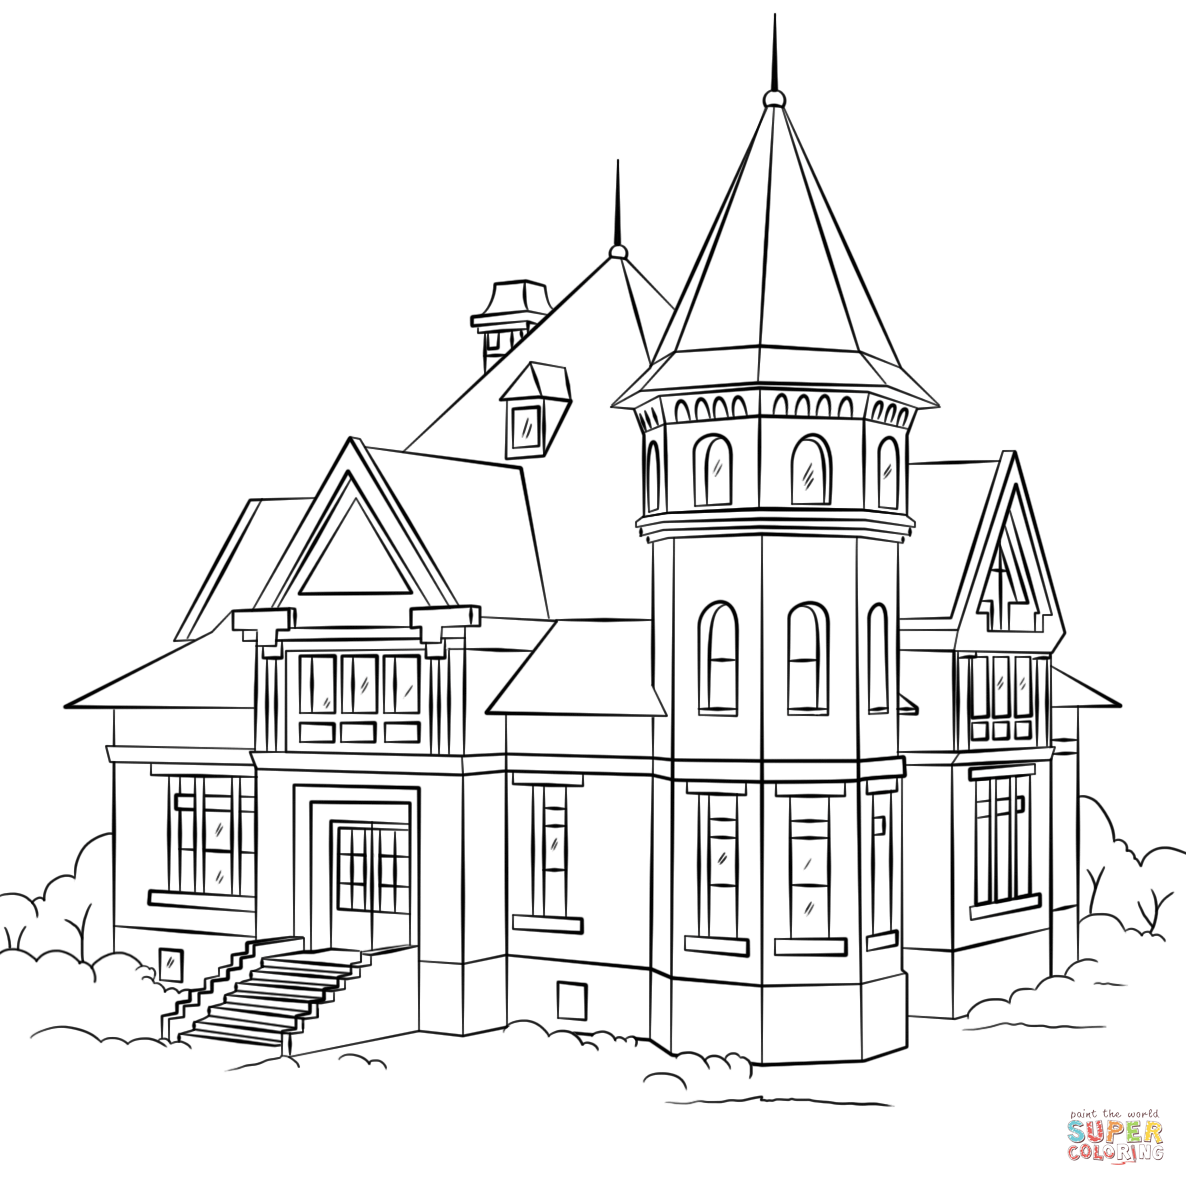 coloring worksheets house free printable house coloring pages for kids house worksheets coloring house